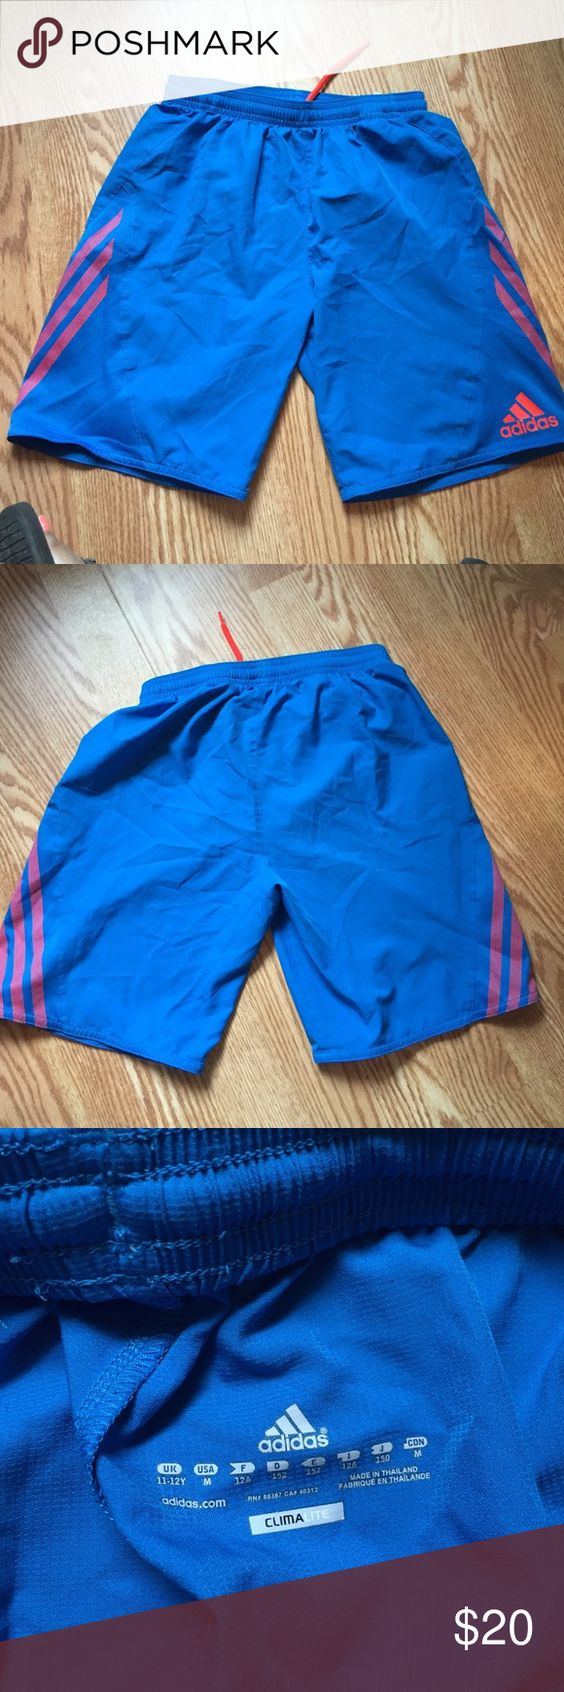 Adidas shorts Great condition Adidas boys shorts size Medium. adidas Bottoms Shorts